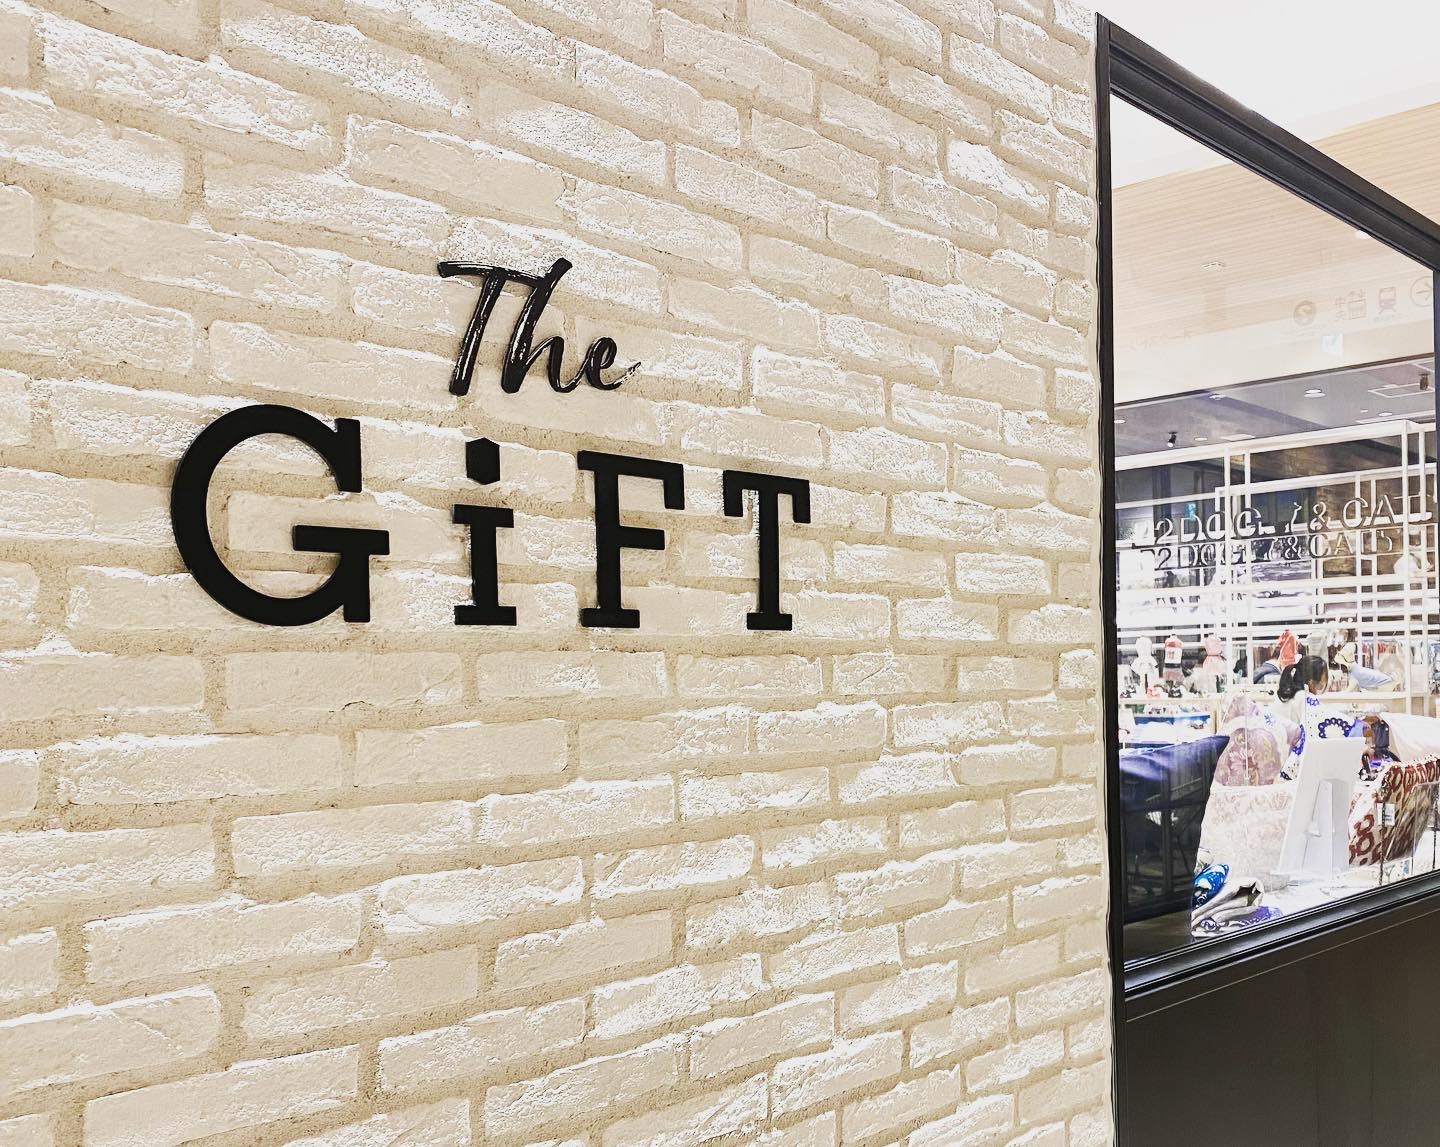 POPUP 2021年5月31日まで延長!二子玉川The GiFT